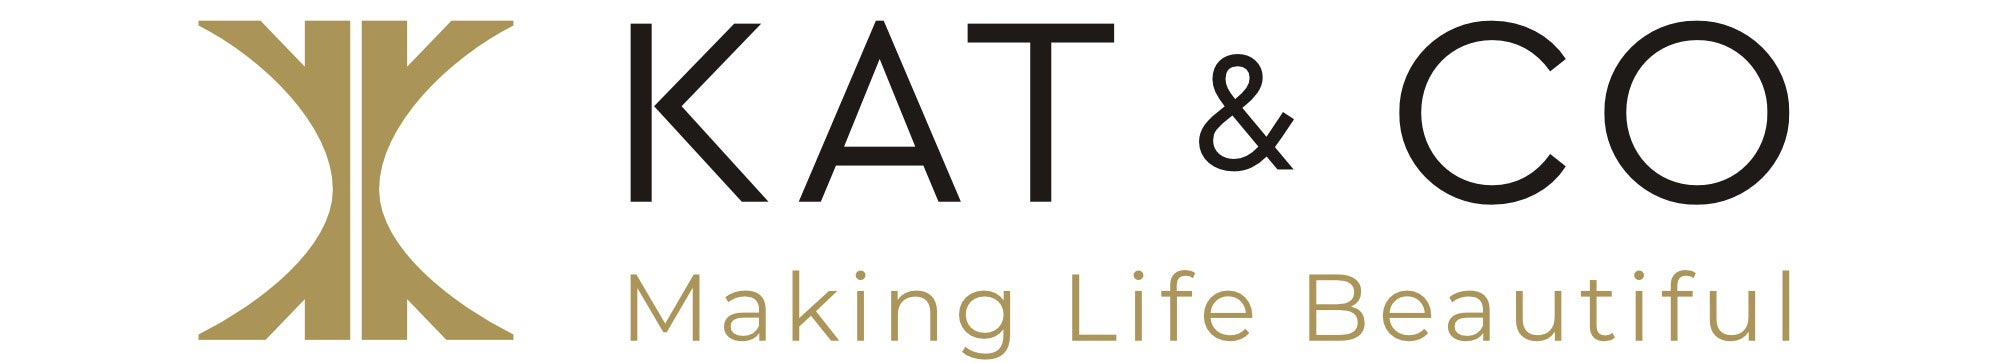 Kat & Co Making Life Beautiful Logo